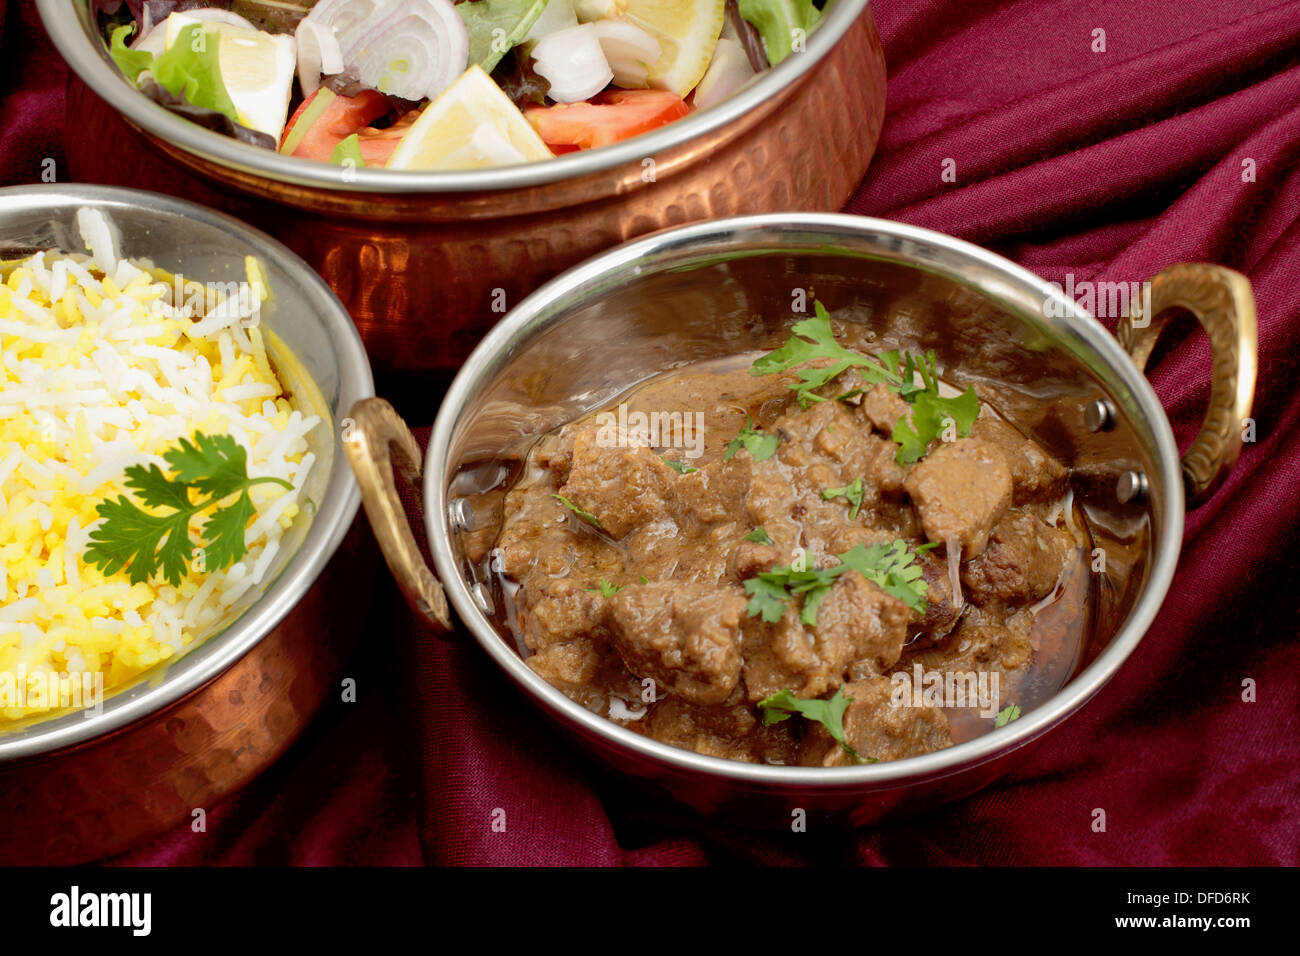 Indian copper dishes with beef rogan josh, white and yellow rice and a salad, - Stock Image